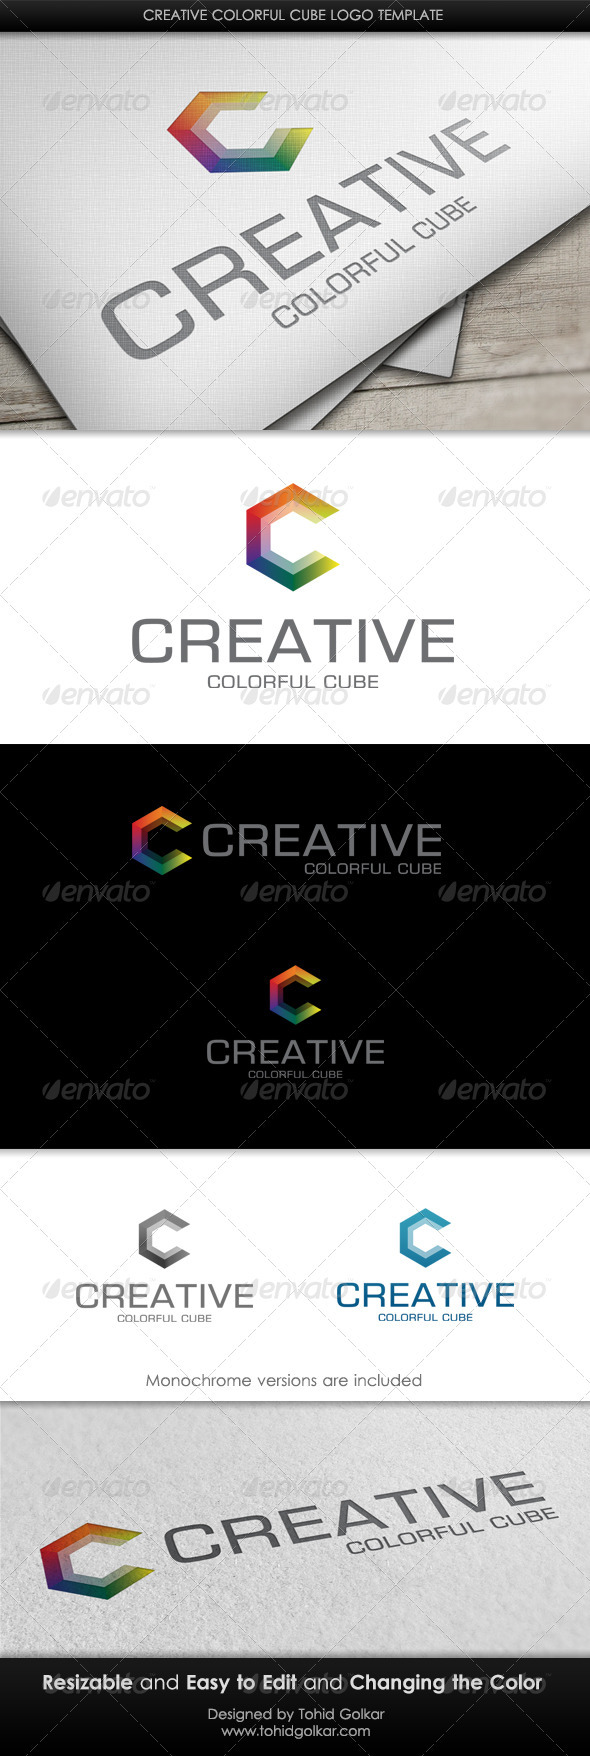 GraphicRiver Creative Colorful Cube Logo Template 3422686